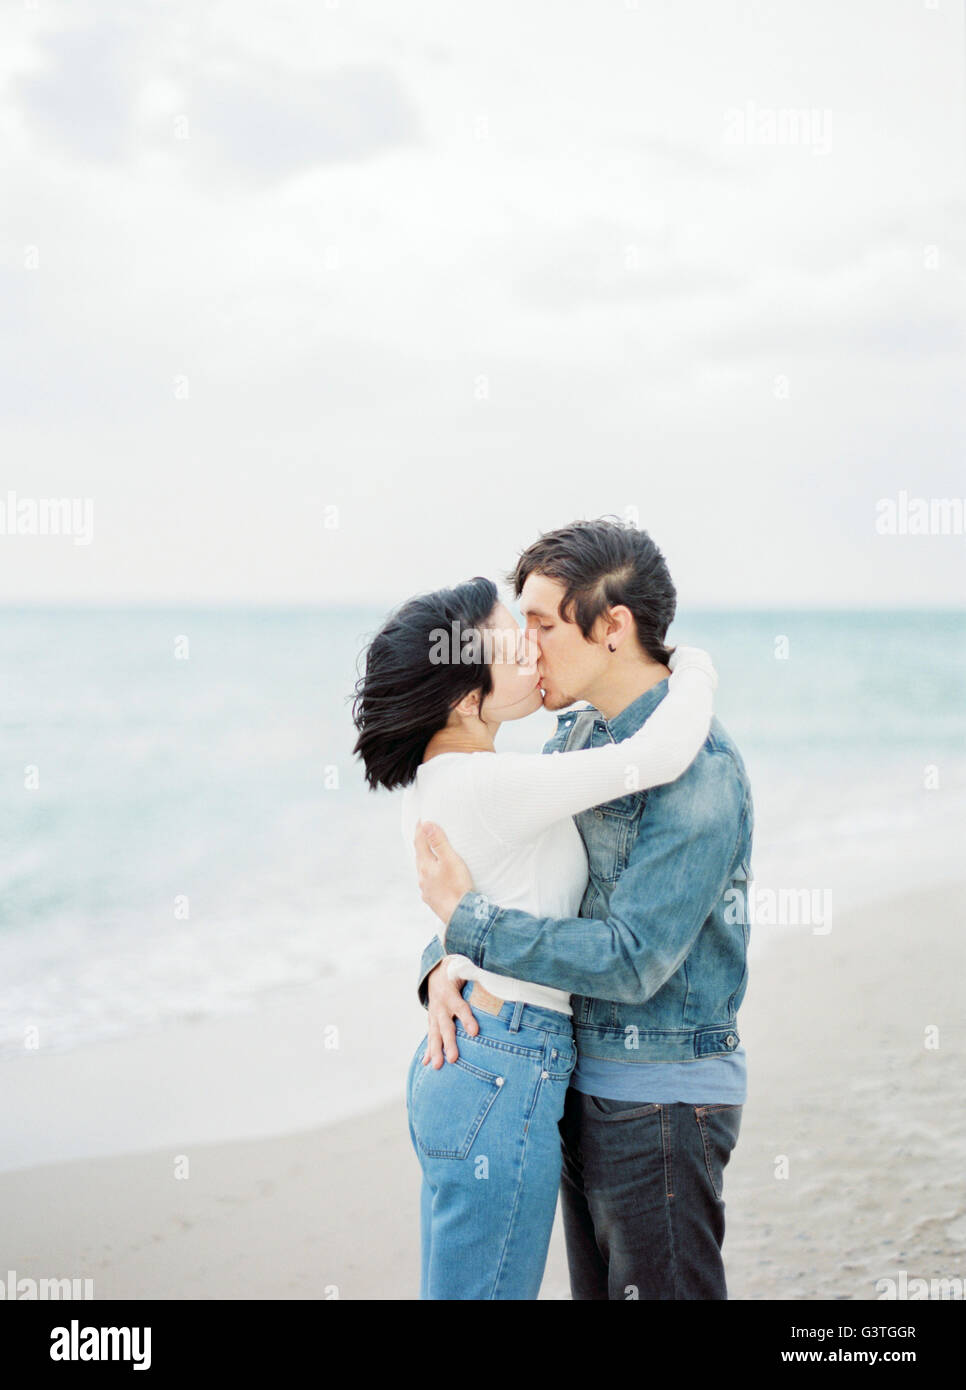 Spain, Valencia, Couple embracing and kissing on beach - Stock Image